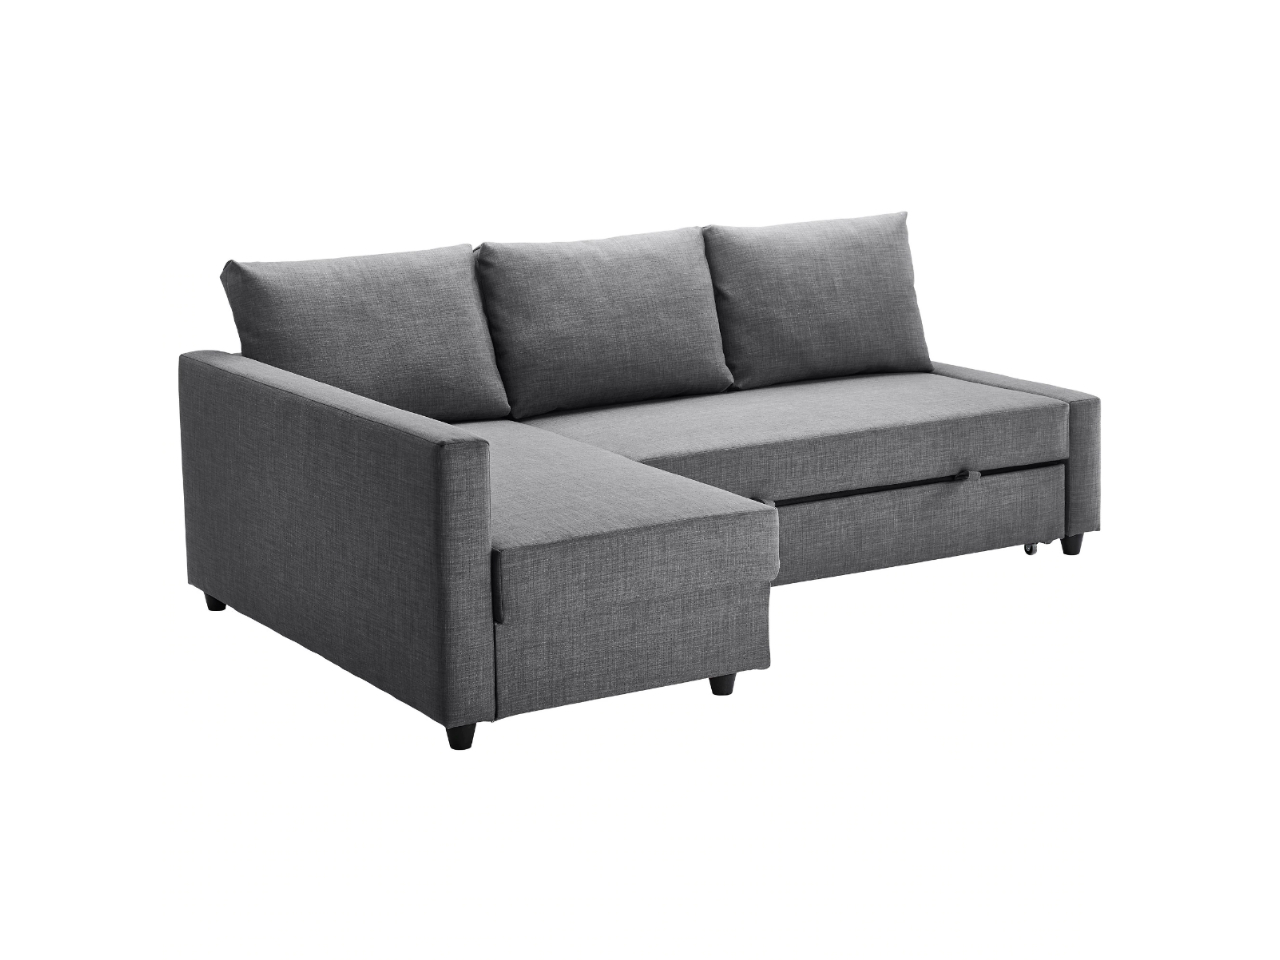 Sofa Black Friday Drdp the 5 Best S From Ikea Canada S 2018 Black Friday Sale Chatelaine